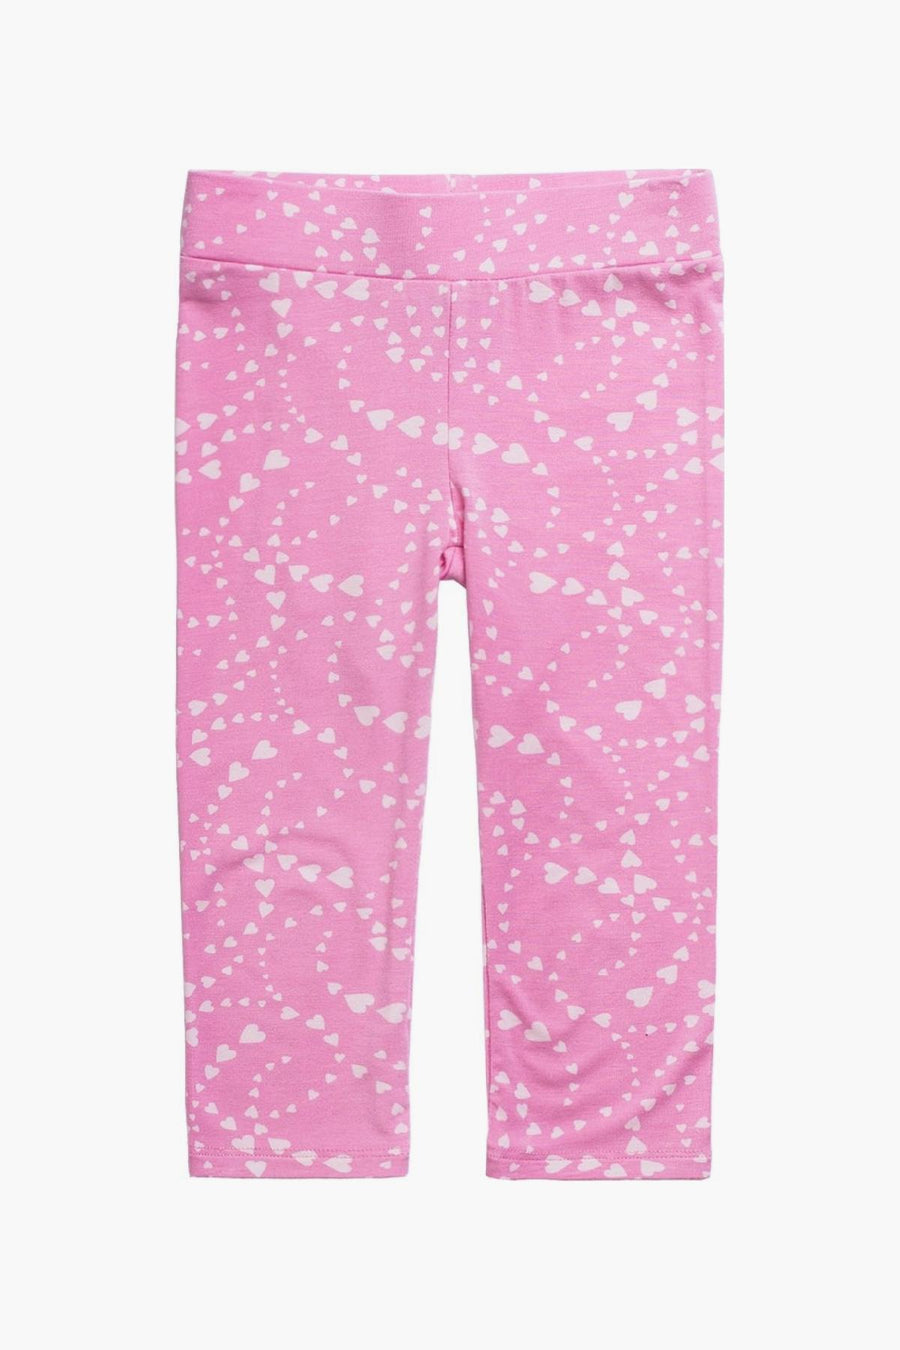 Imoga Eleni Girls Leggings - Heart Candy